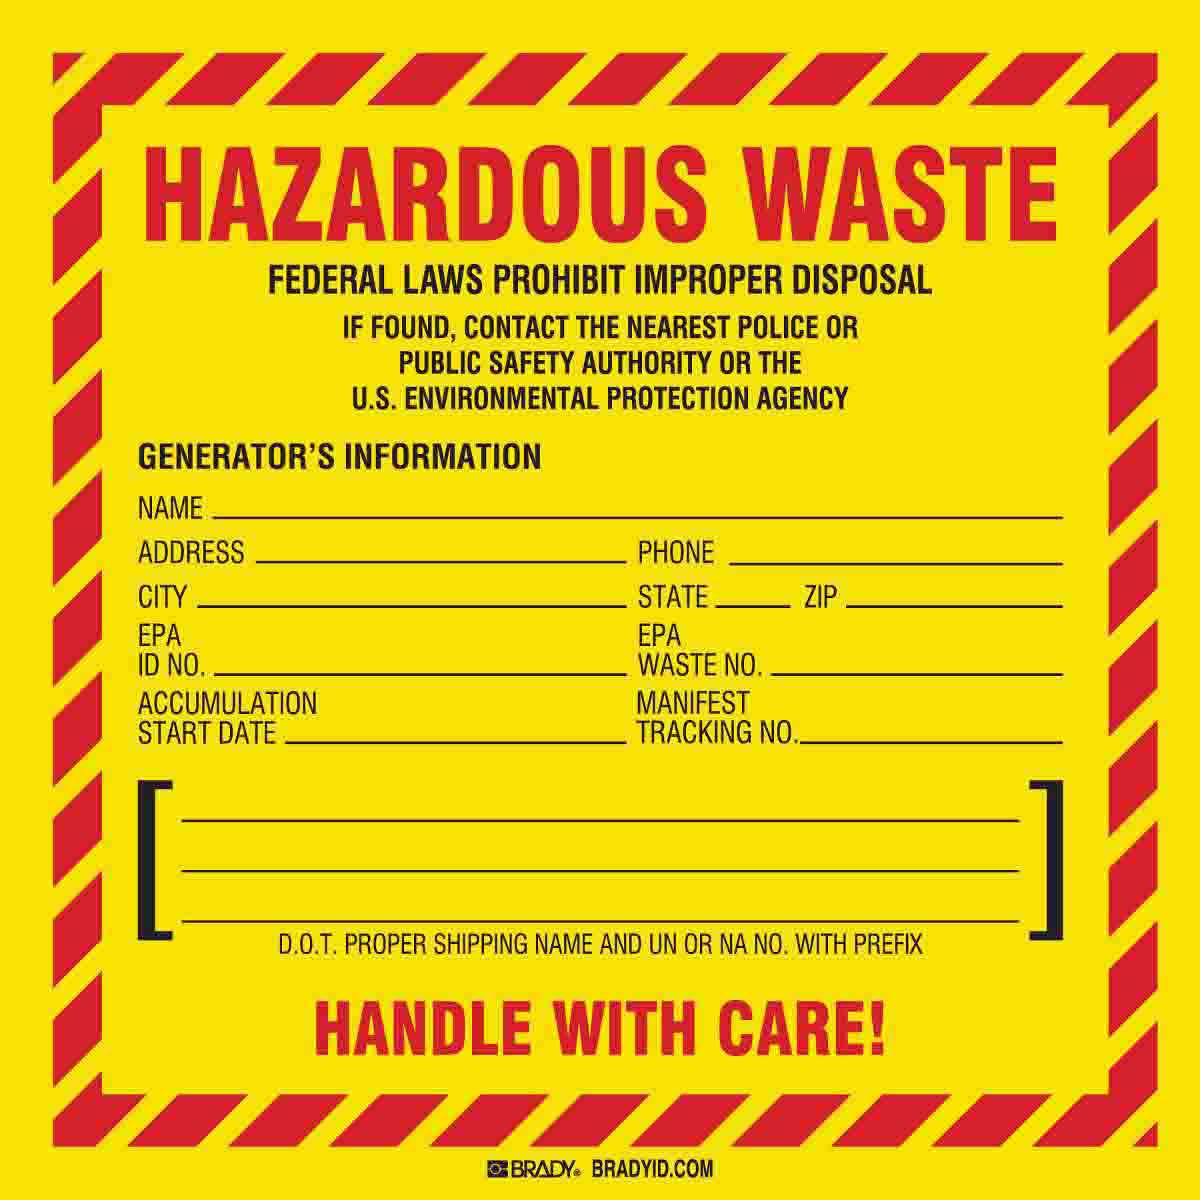 Brady® 121067 Diamond Non-Reflective Self-Adhesive Hazardous Material Shipping Label, 4 in W, FLAMMABLE LIQUID 3 Legend, Red on White, B-7569 Adhesive Vinyl Film, 500 per Roll Labels